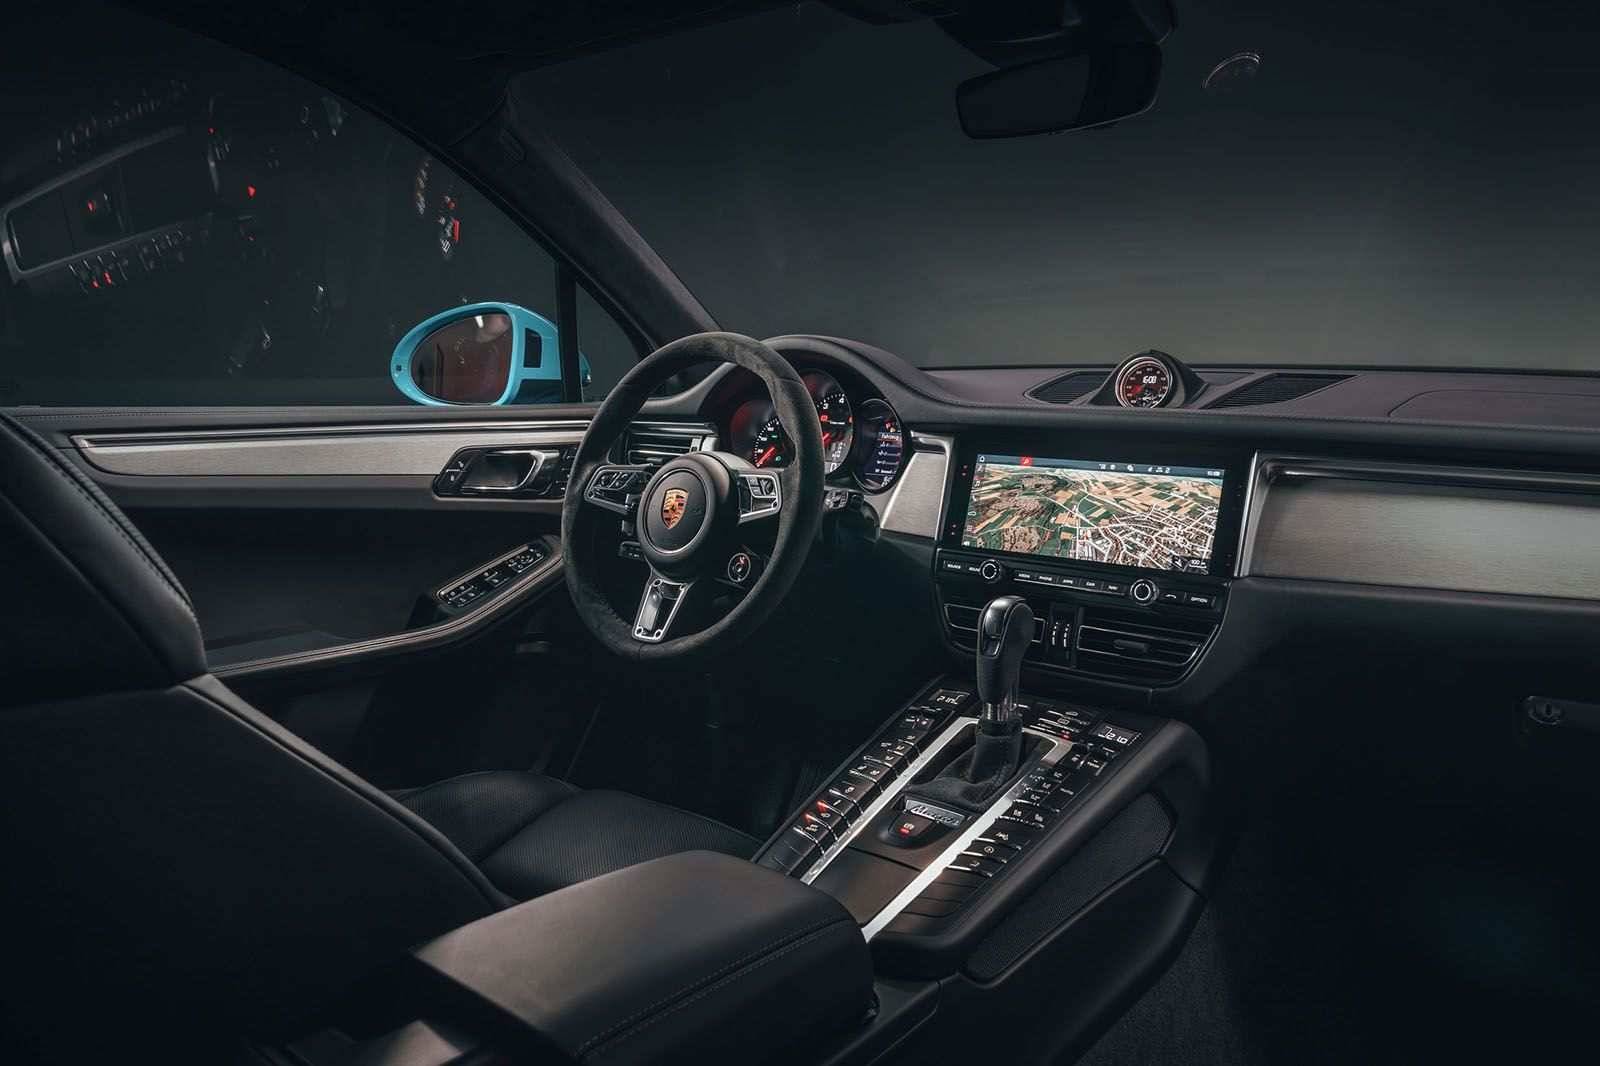 73 New 2019 Porsche Macan Interior Redesign